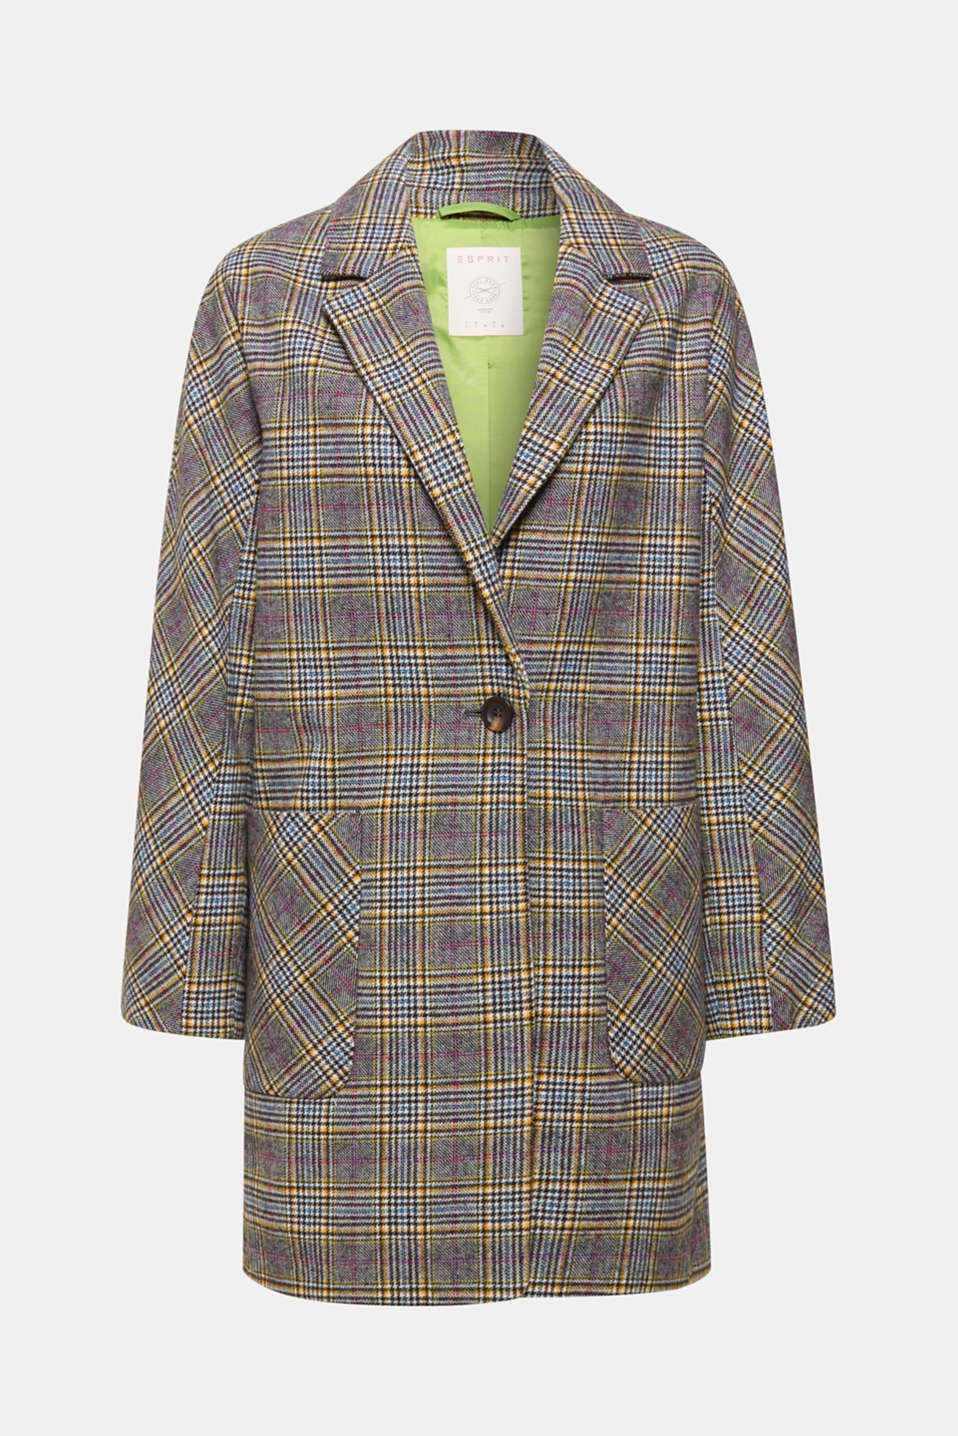 This casually cut, oversize coat made of a warming wool blend with a colourful, Prince of Wales check pattern and large pockets is a redesigned replica of an all-time classic!